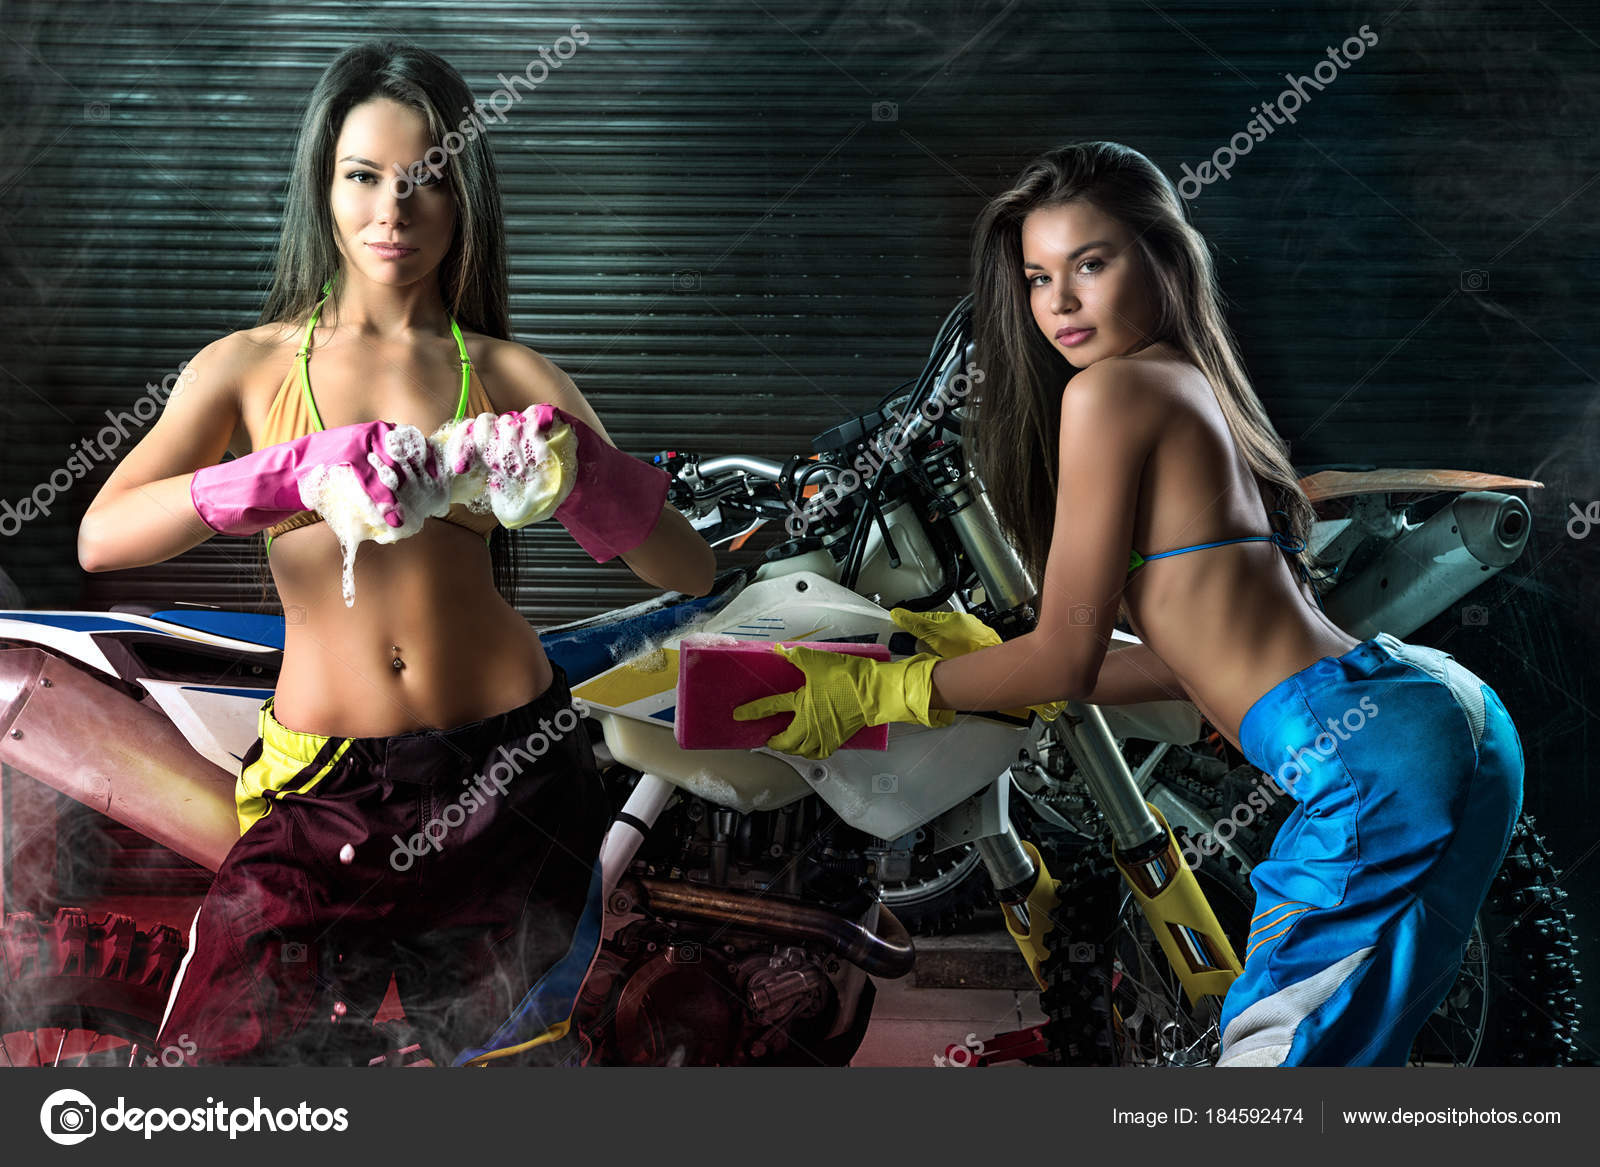 Sexy young models washing motorcycle — Stock Photo